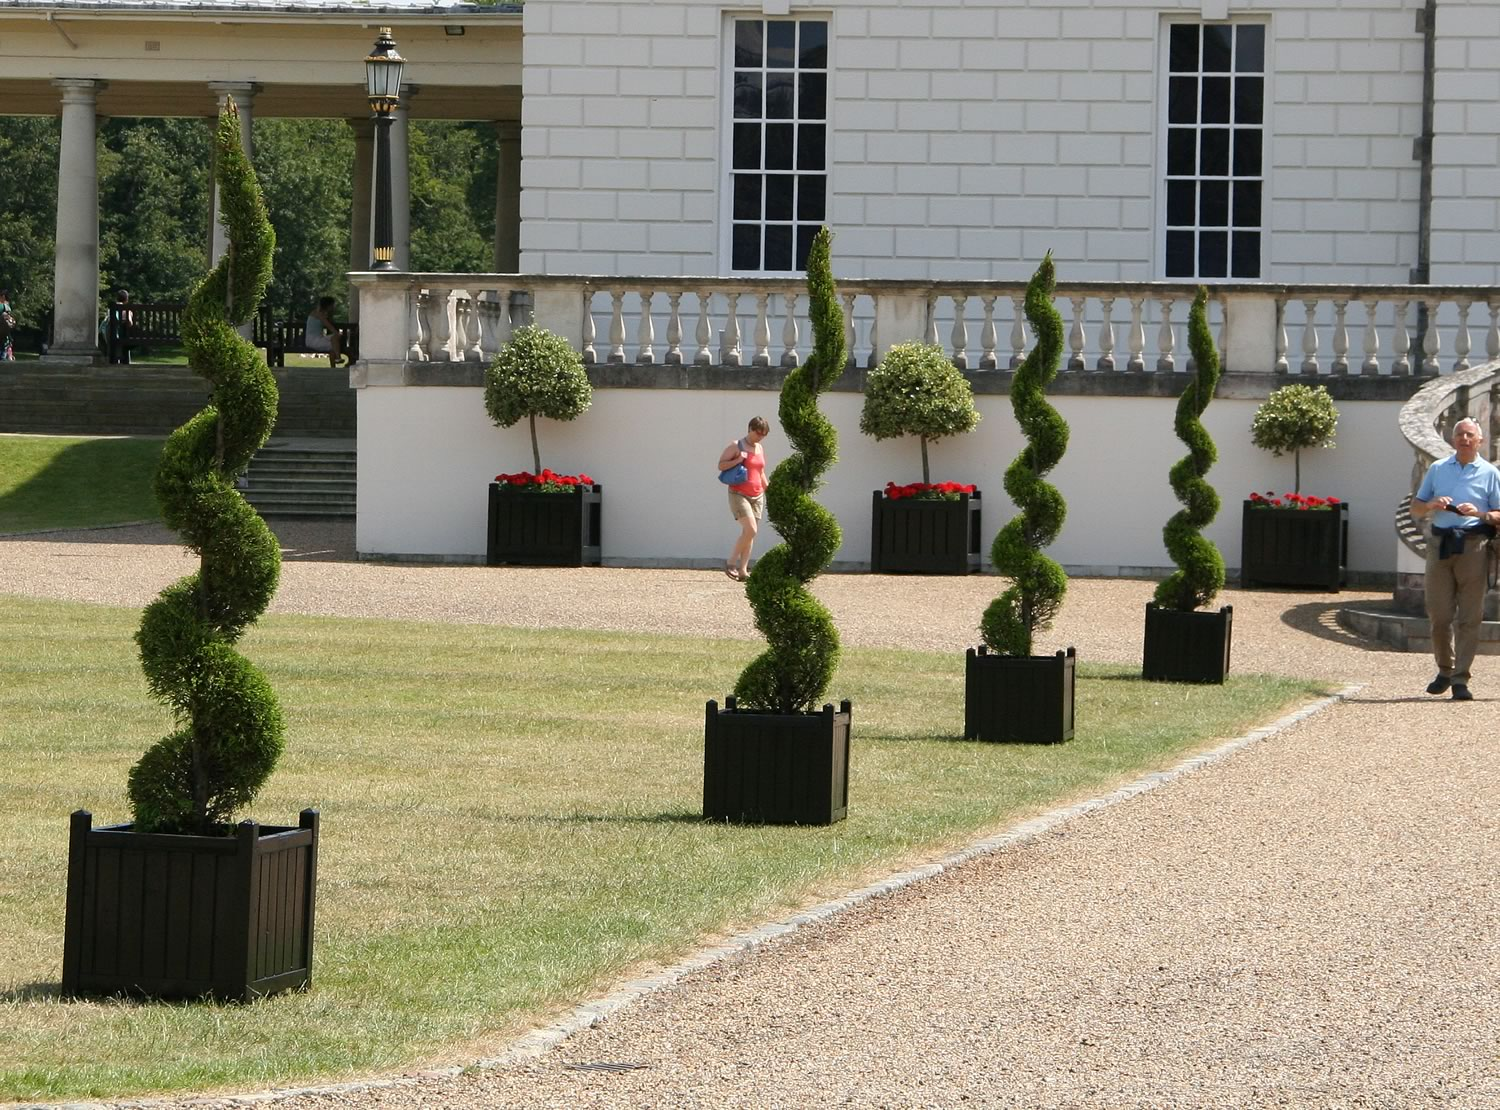 Exhibition Stand Hire Yorkshire : Topiary spirals ⋆ real oasis hiring plants trees